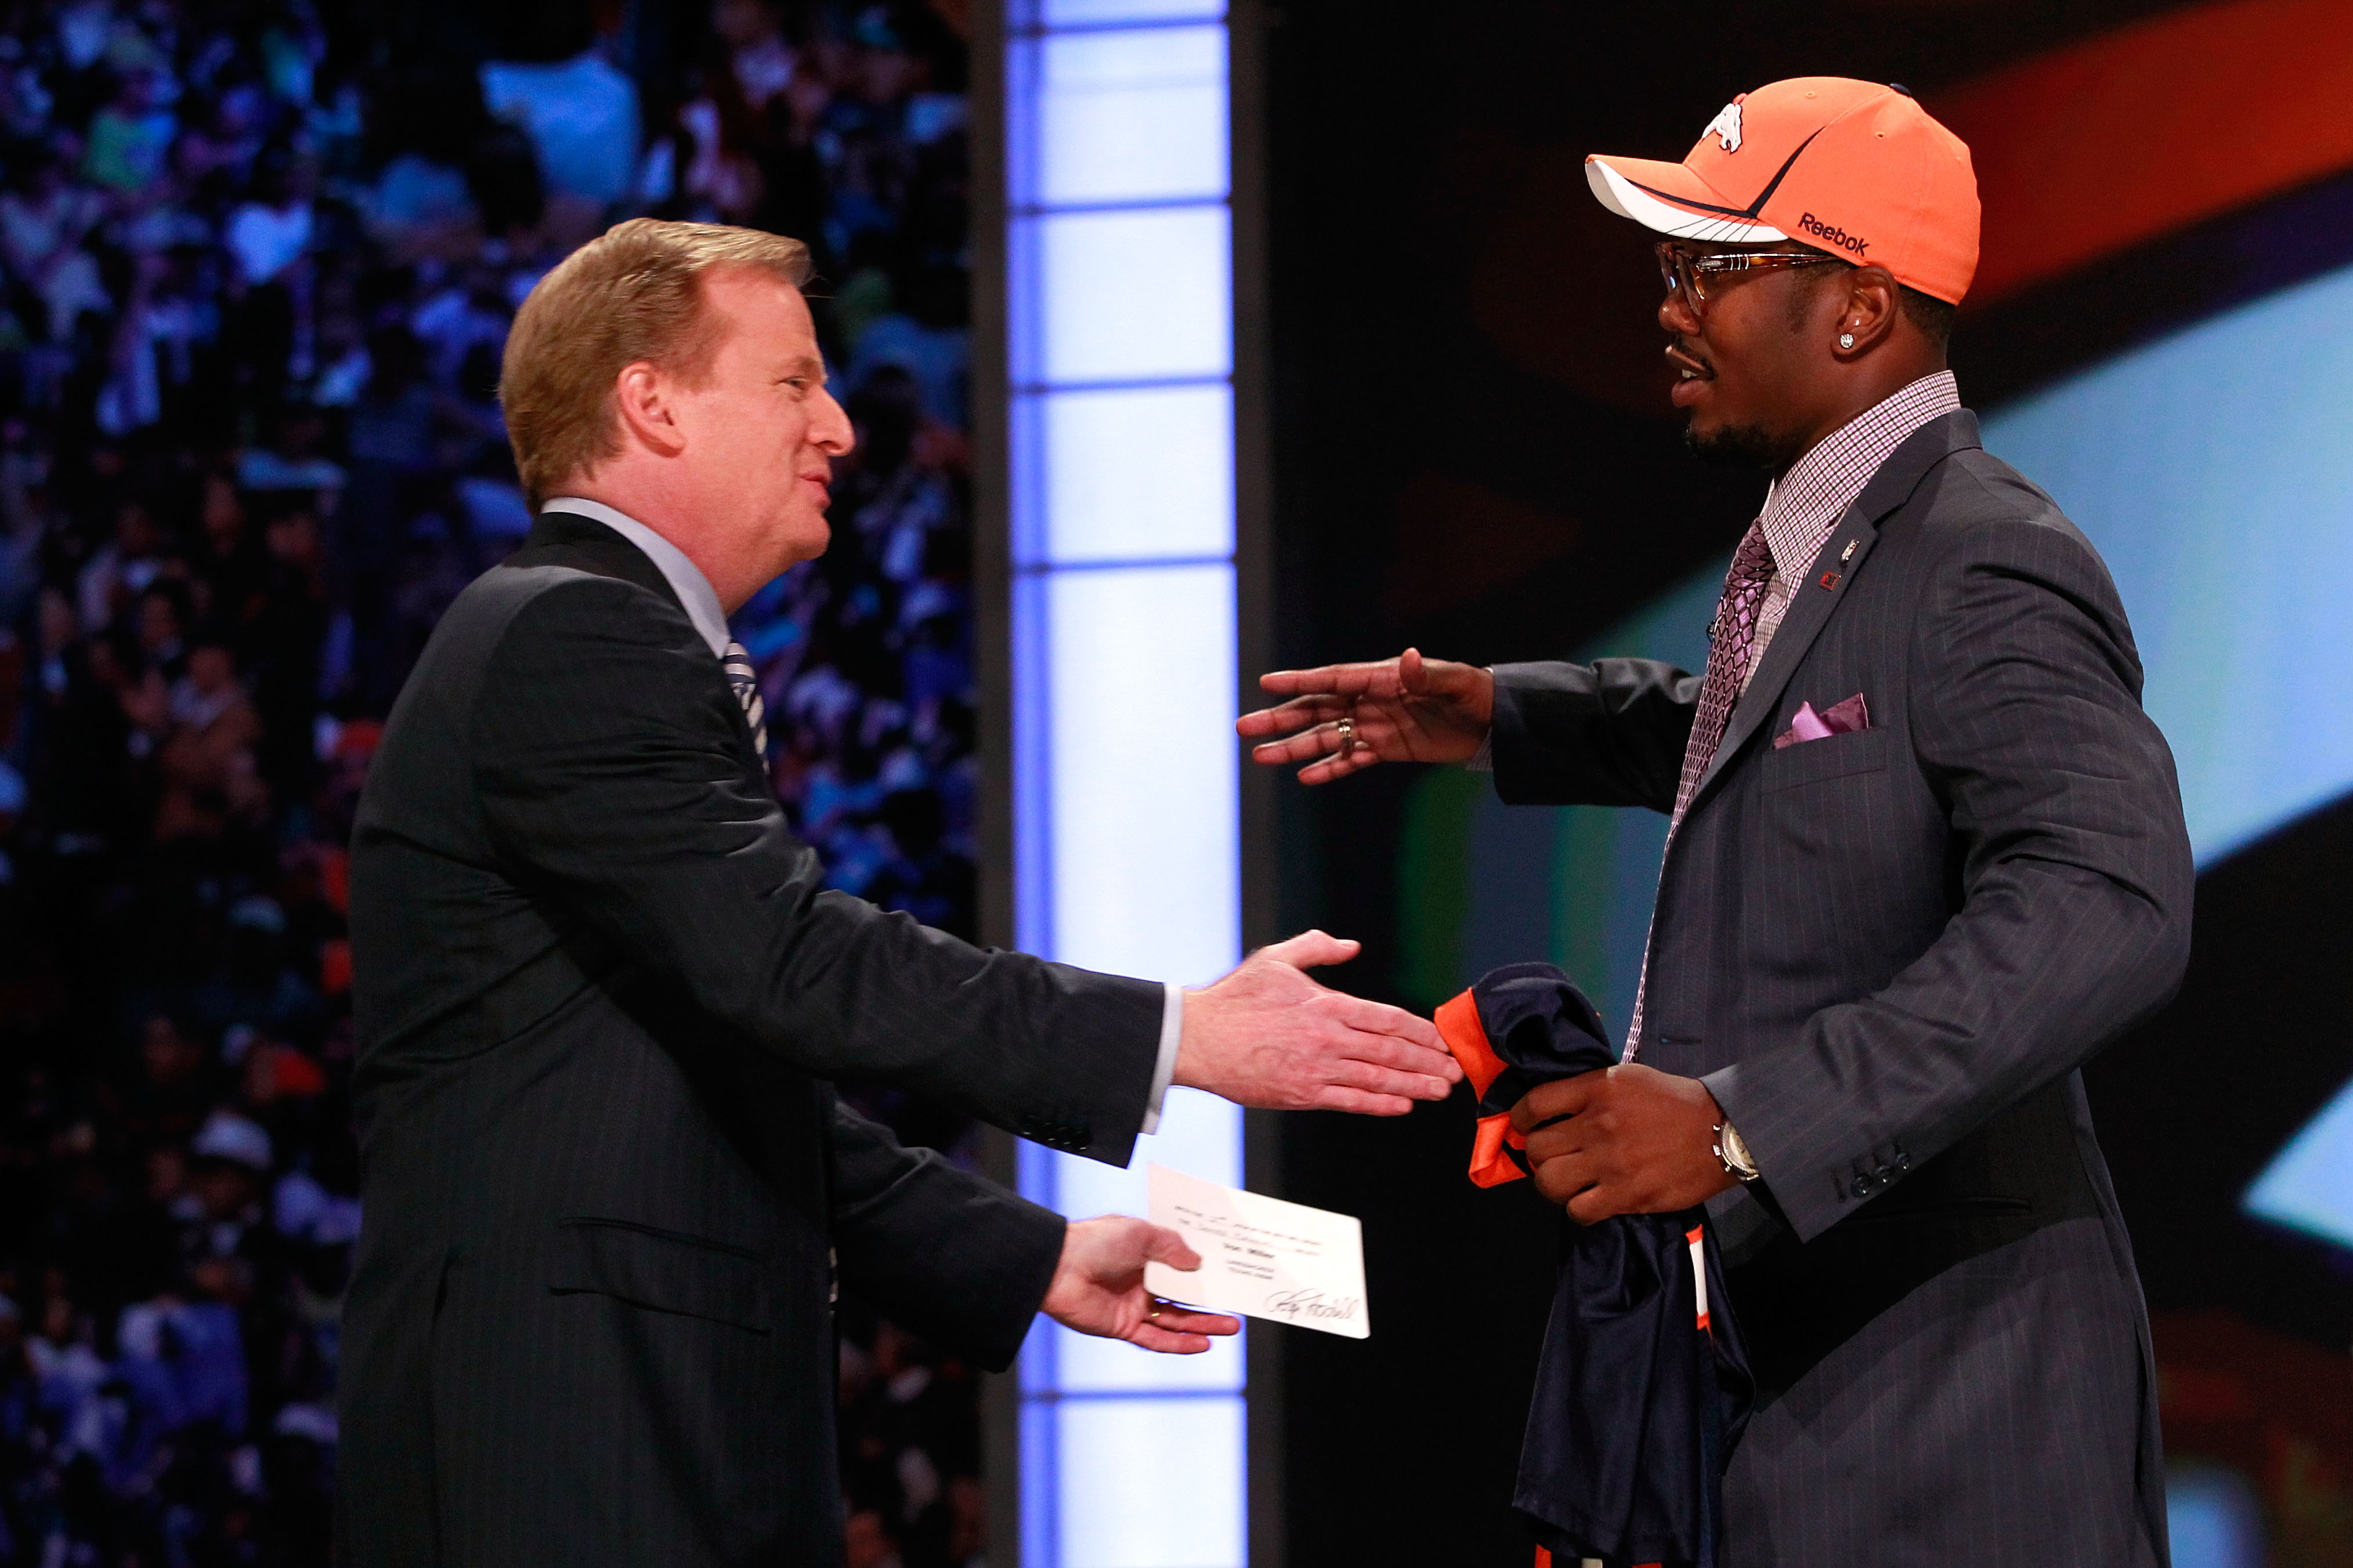 NEW YORK, NY - APRIL 28:  NFL Commissioner Roger Goodell greets Von Miller, #2 overall pick by the Denver Broncos, during the 2011 NFL Draft at Radio City Music Hall on April 28, 2011 in New York City.  (Photo by Chris Trotman/Getty Images)